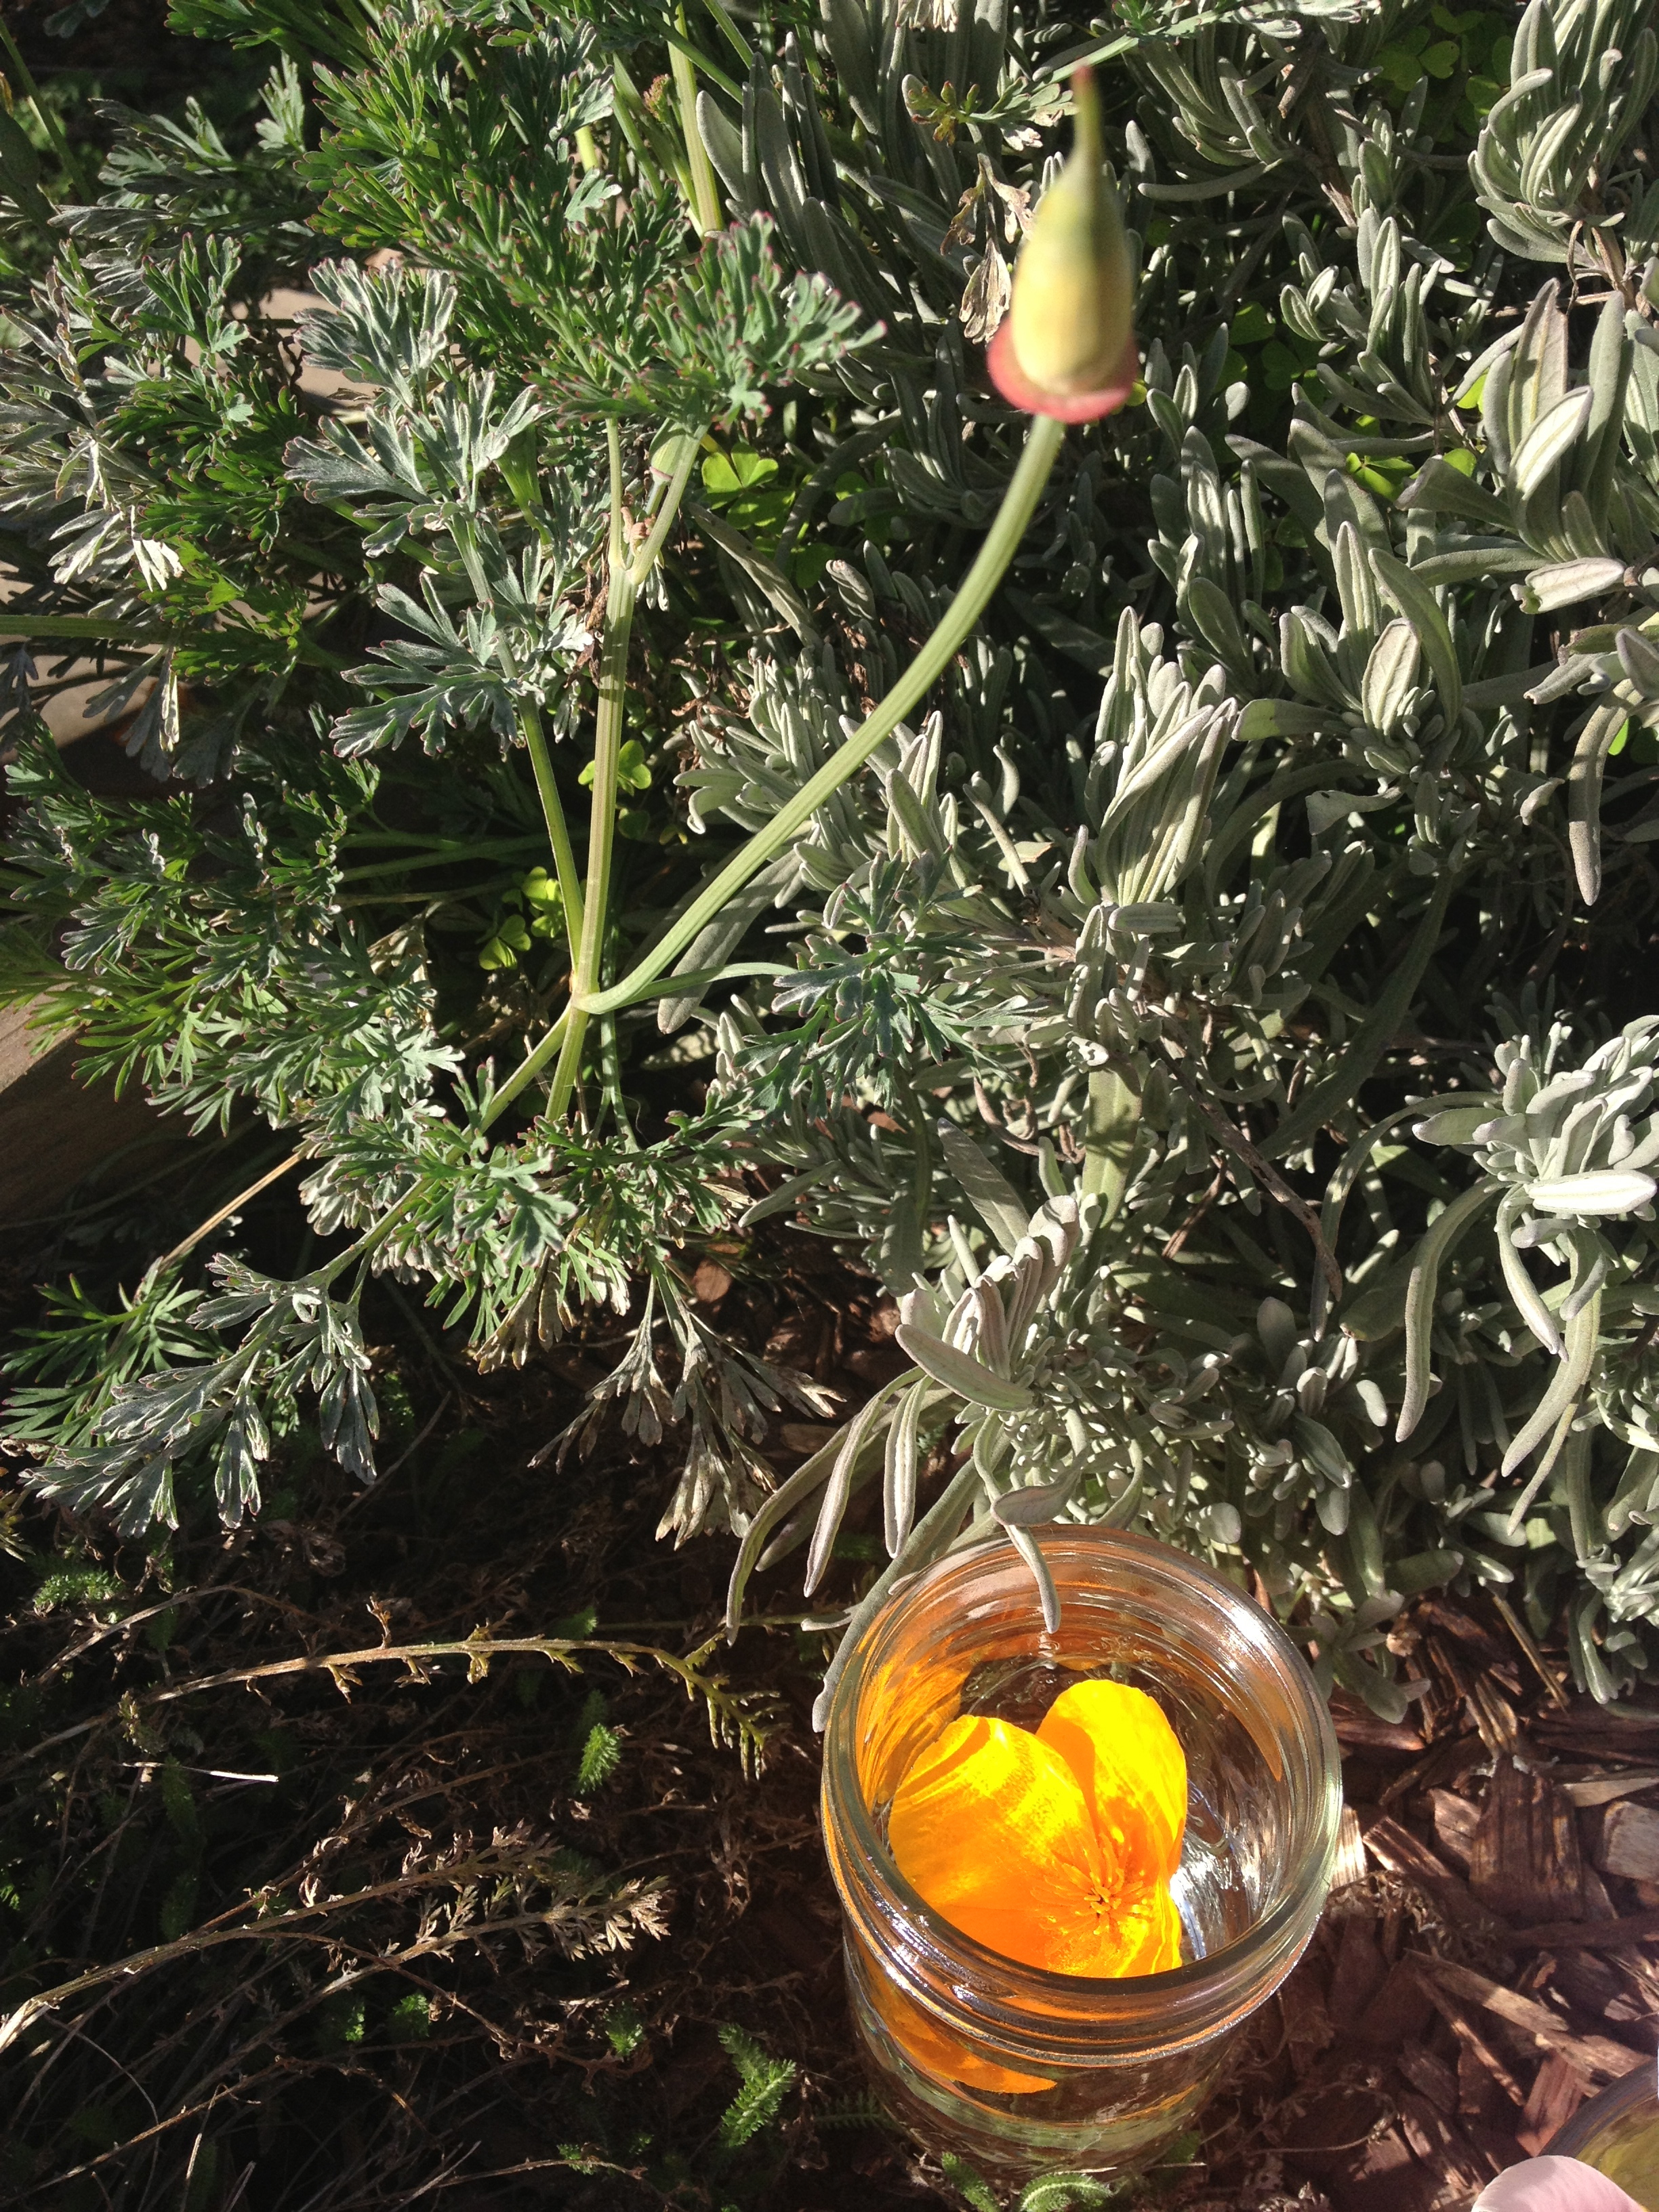 California Poppy flower essence in the making.